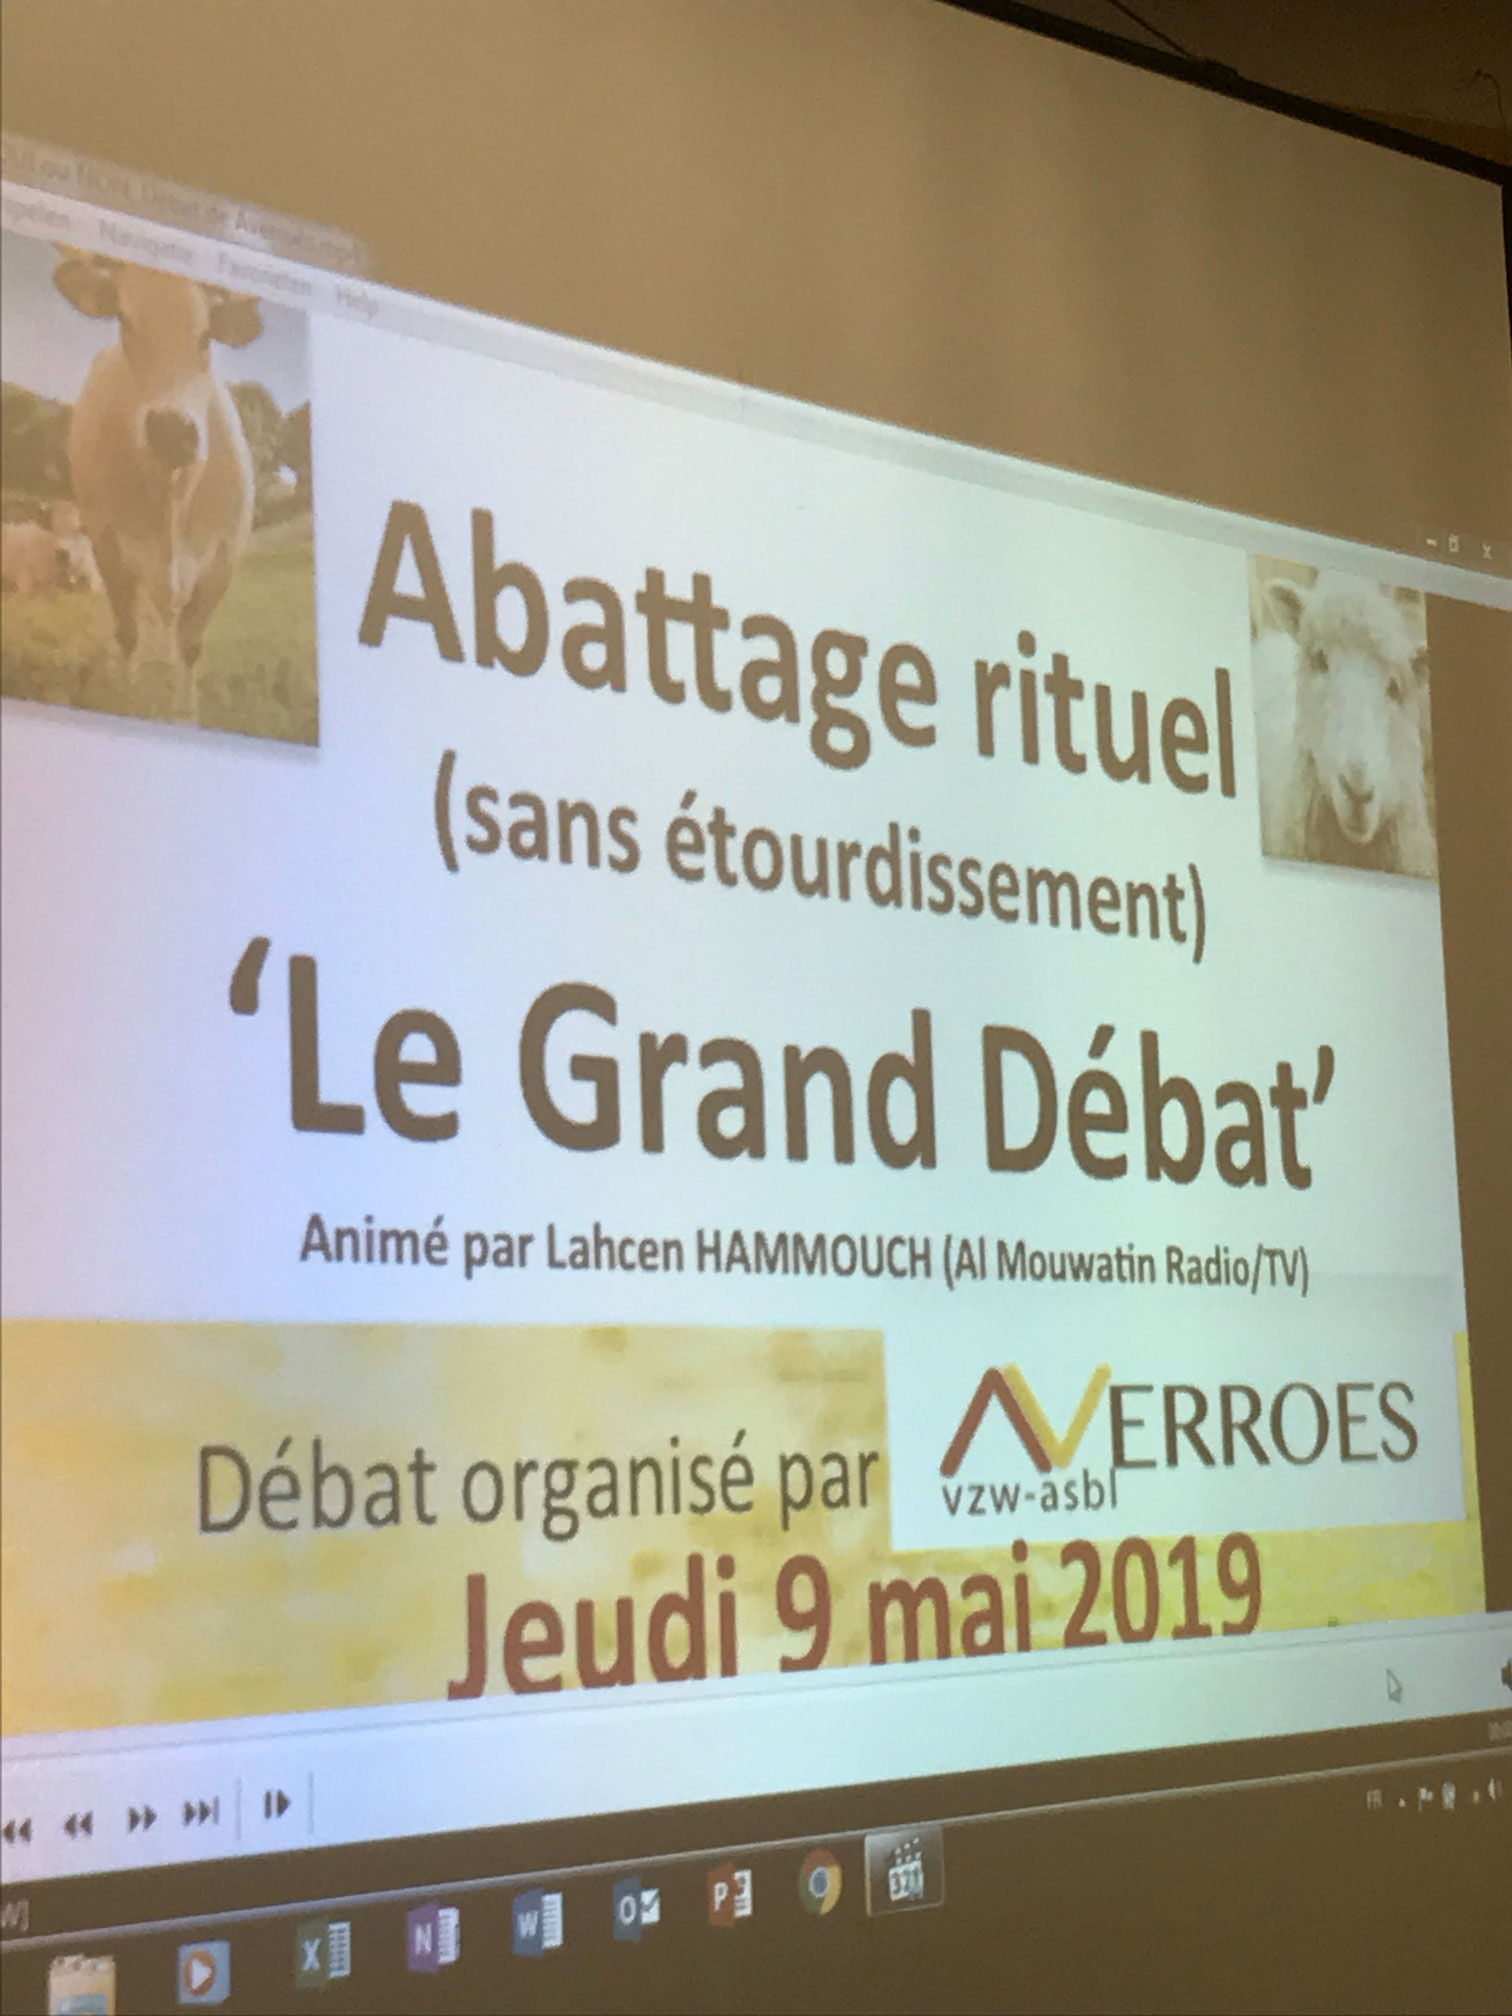 The grand debate where the controversy around Belgiums ban on ritual slaughter is being discussed by various experts with different religious backgrounds and fields of expertise